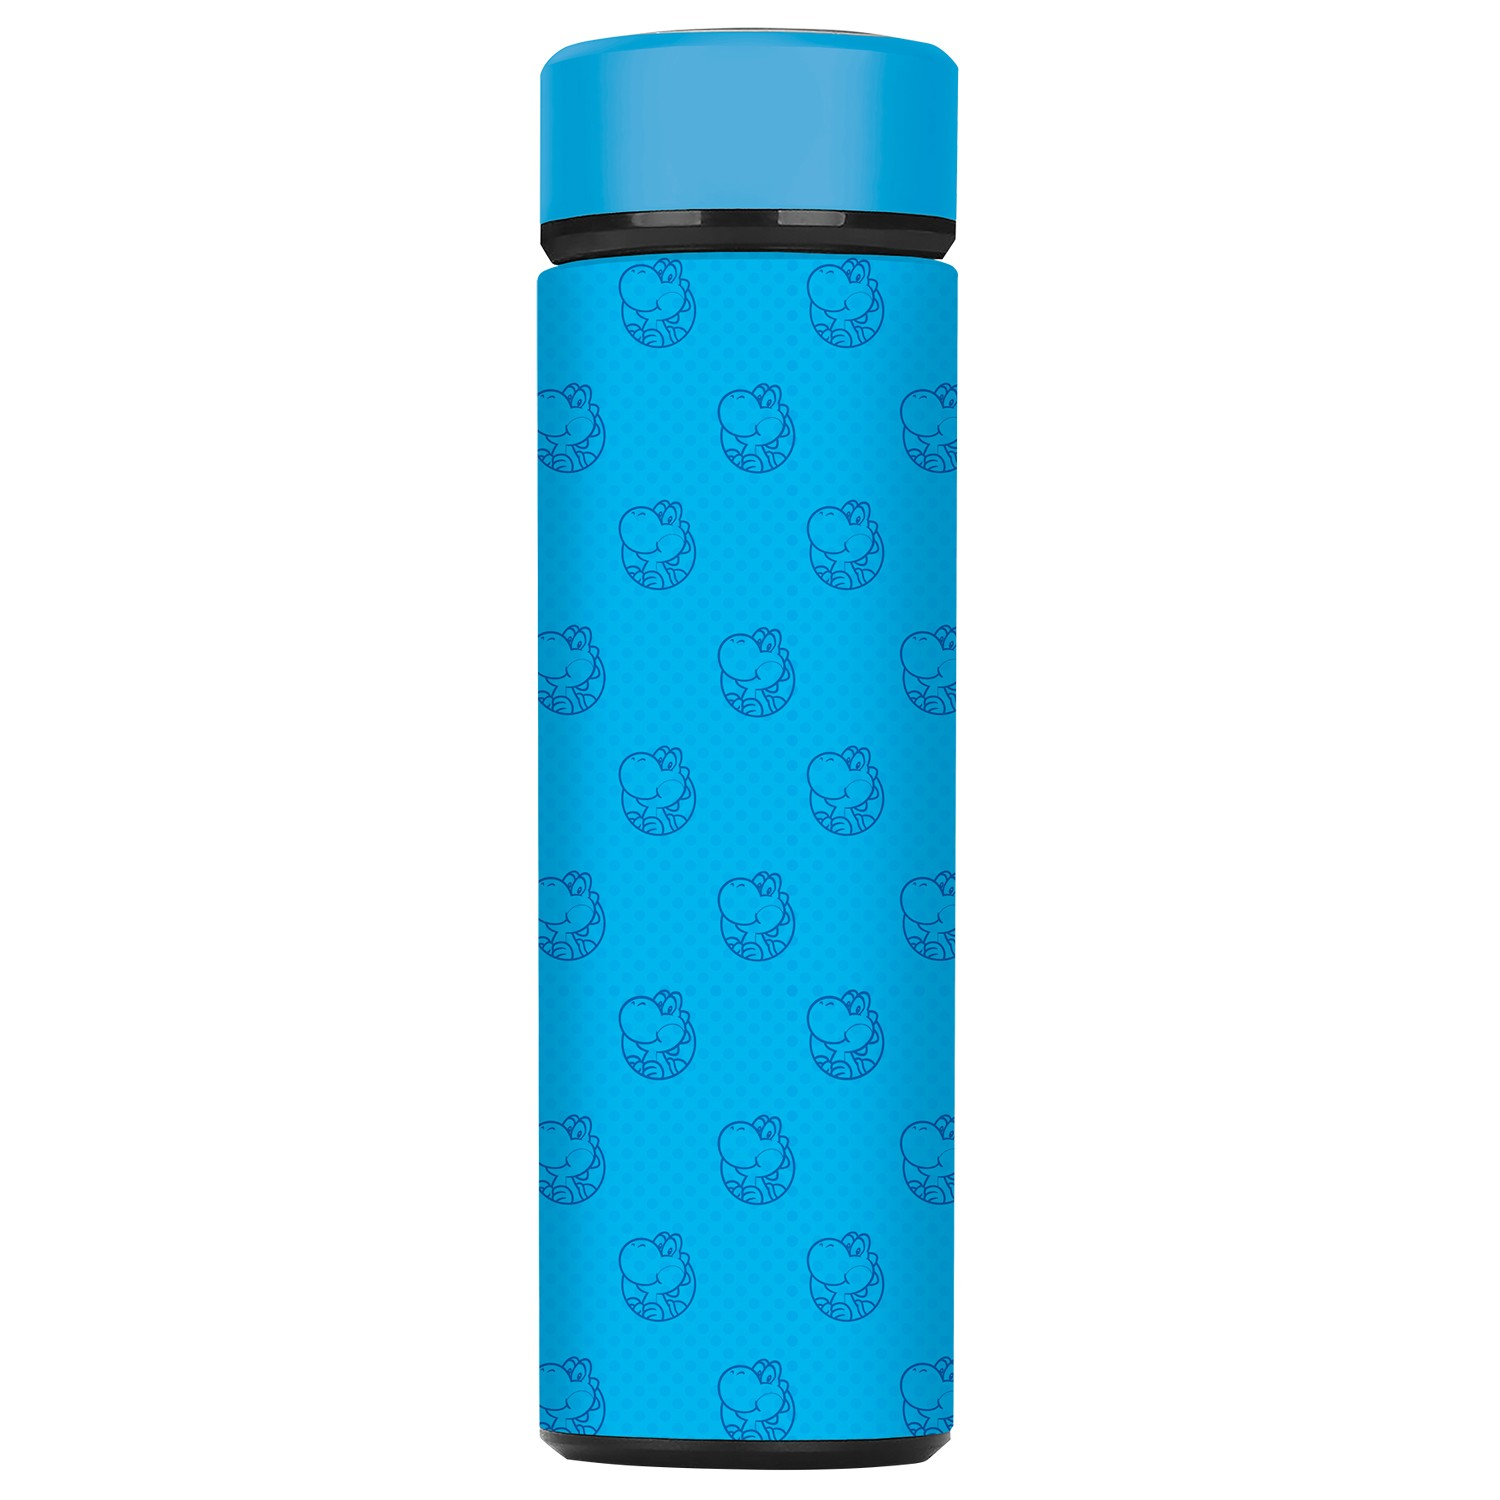 "Super Mario™ ""Yoshi"" Insulated Steel Sport Bottle - Officially Licensed by Nintendo"